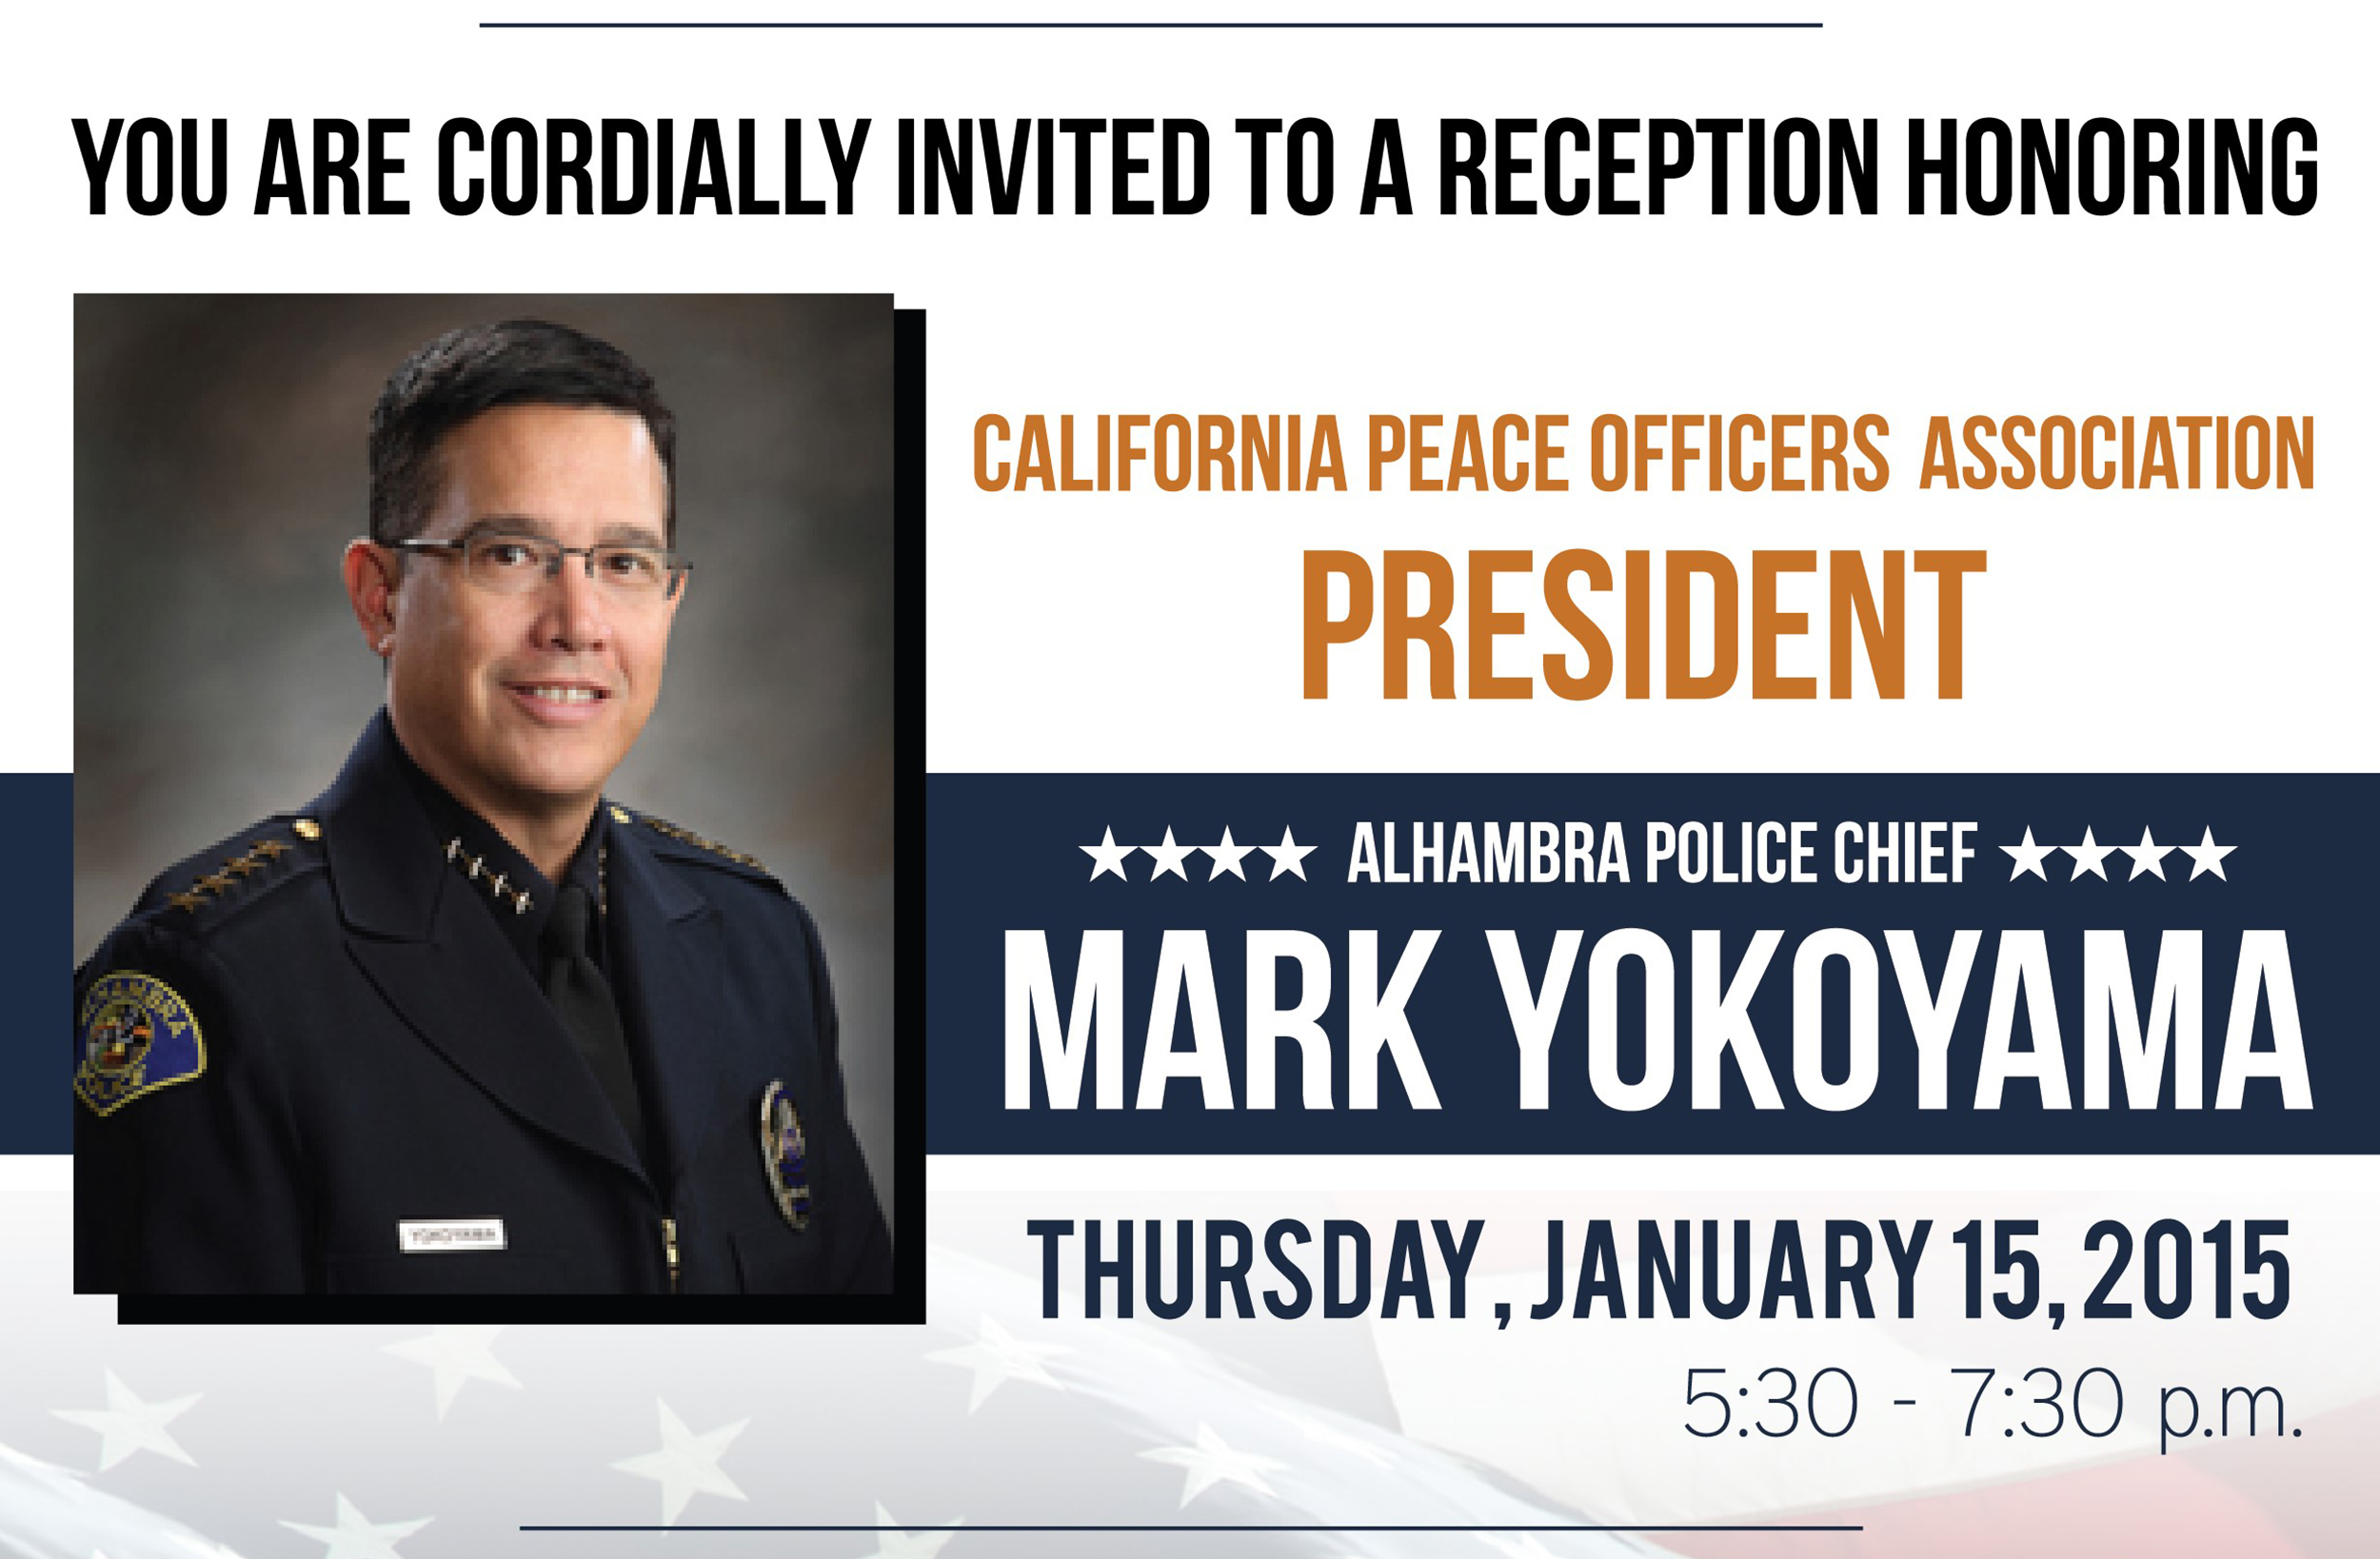 Reception Honoring Alhambra Police Chief – Mark Yokoyama